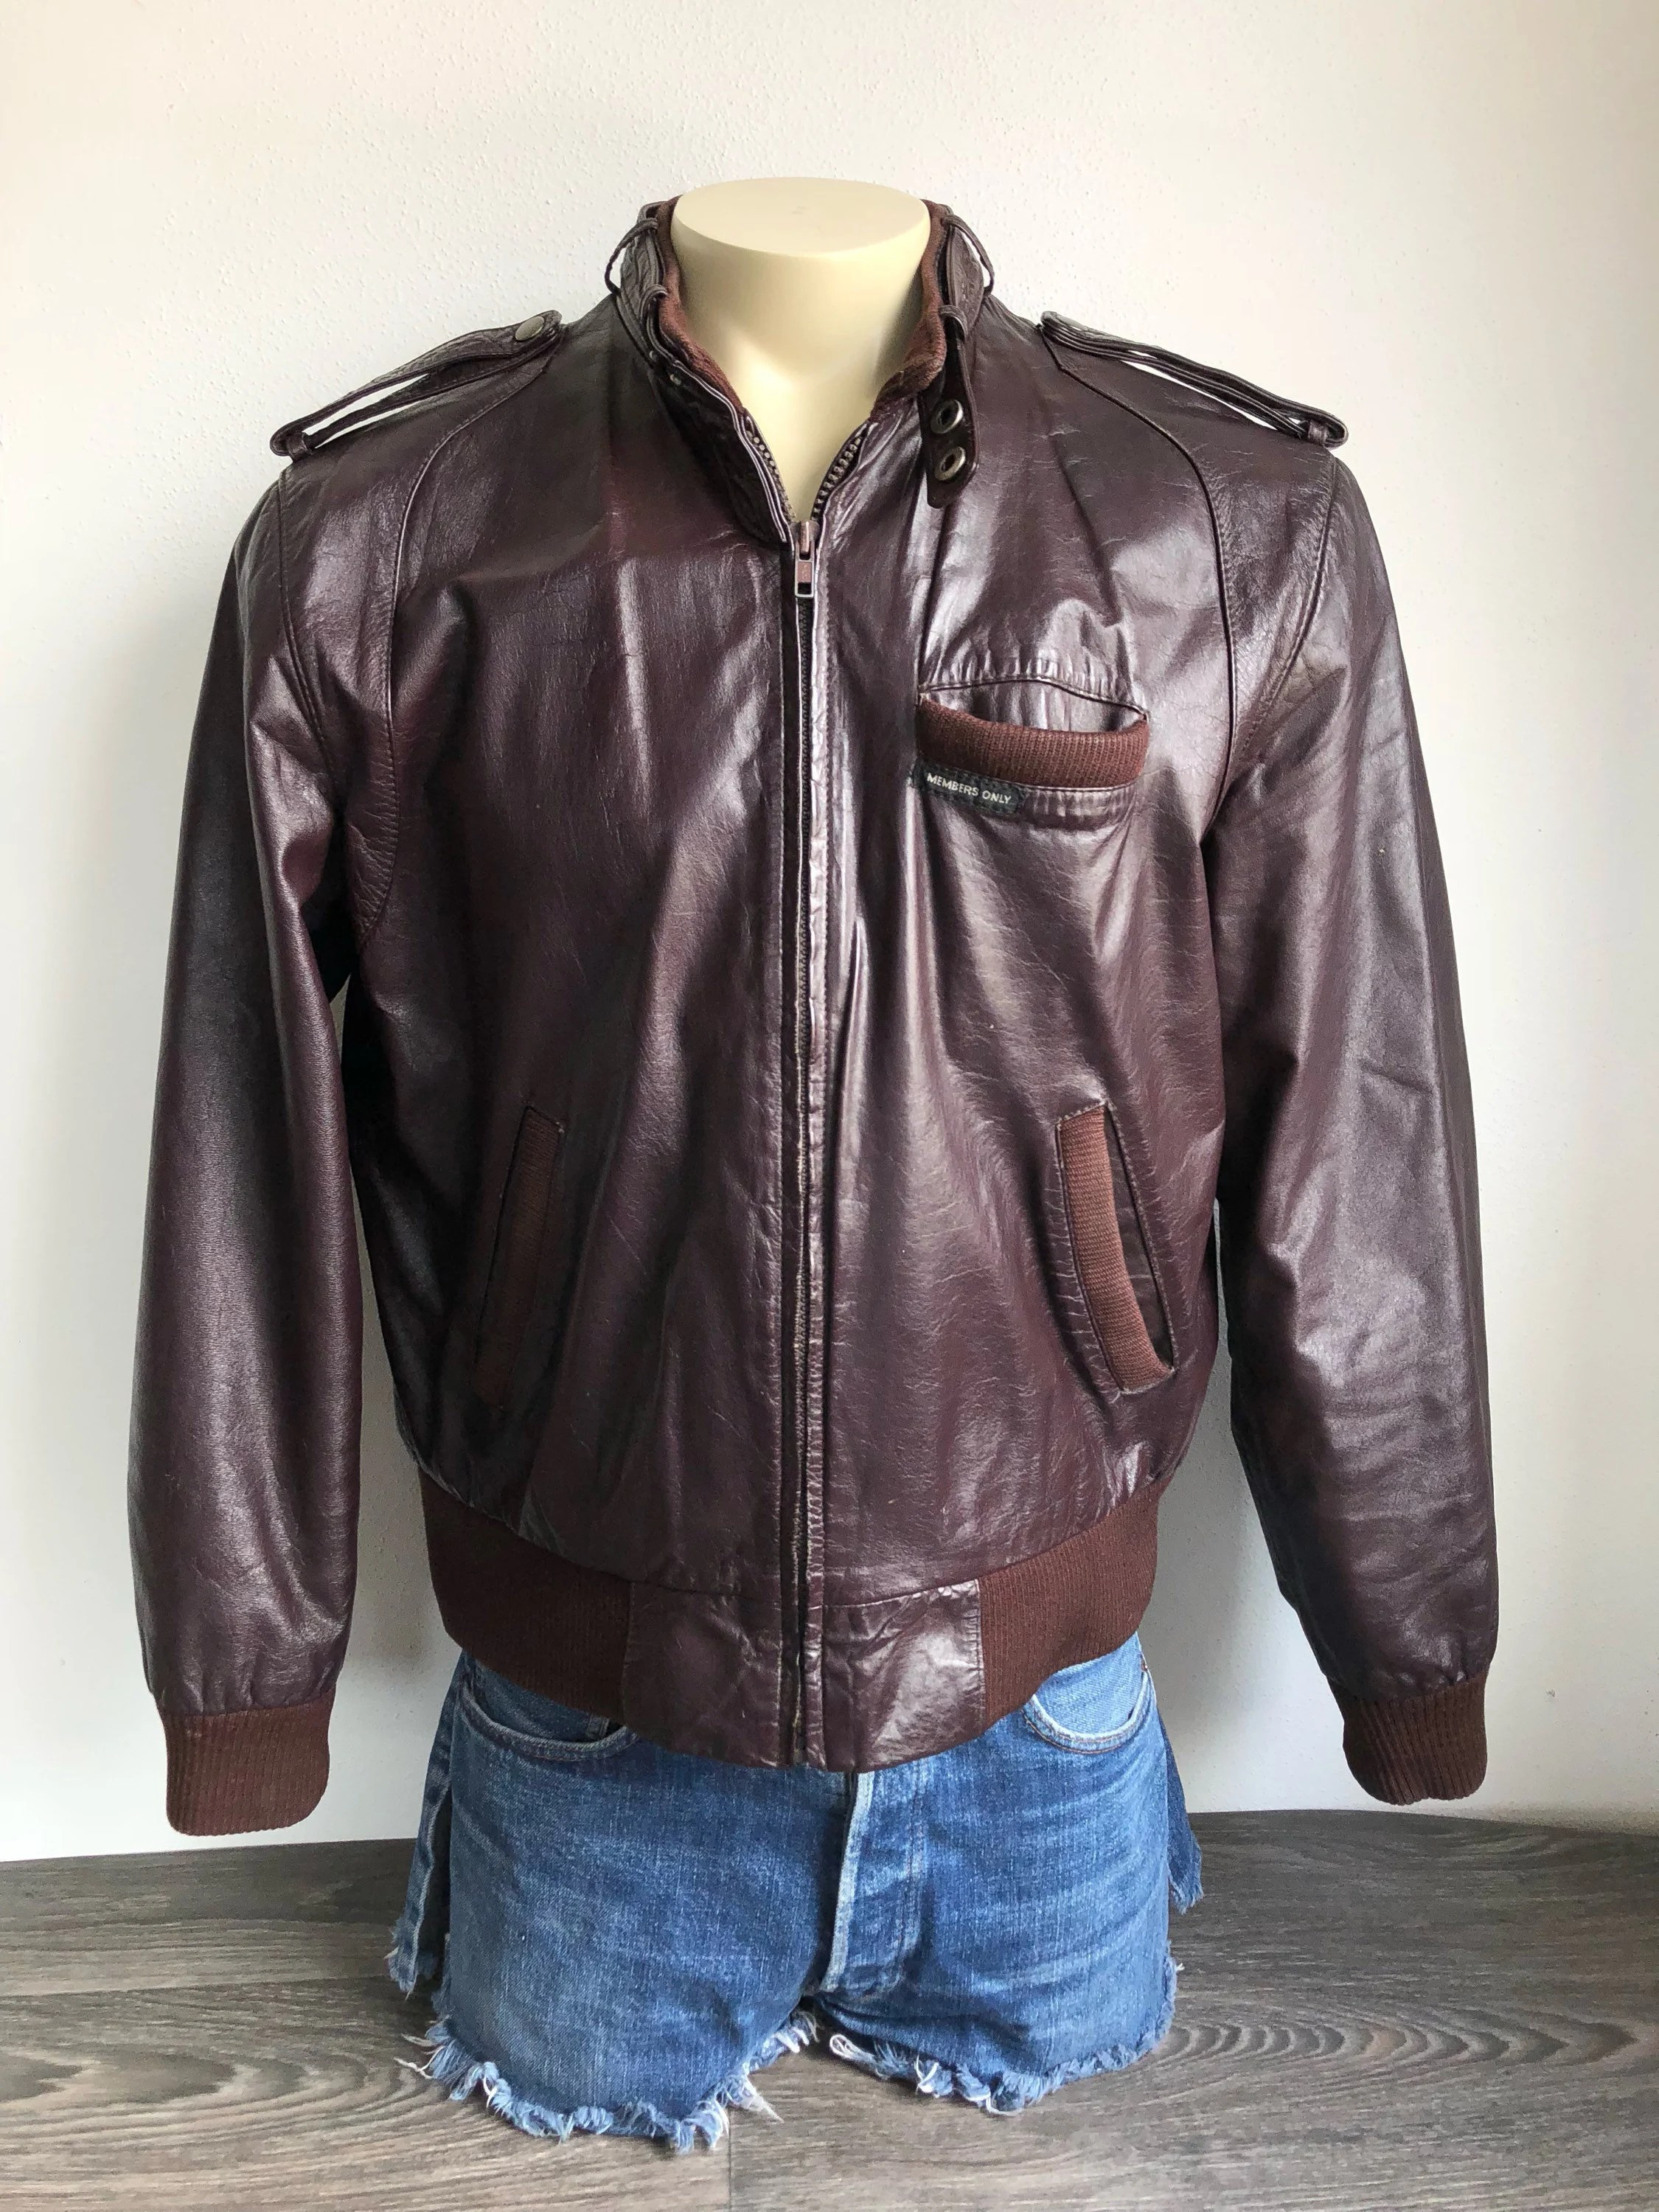 vintage members only leather jacket 80 s soft brown leather europe craft biker racer hipster cafe coat style fashion size 42